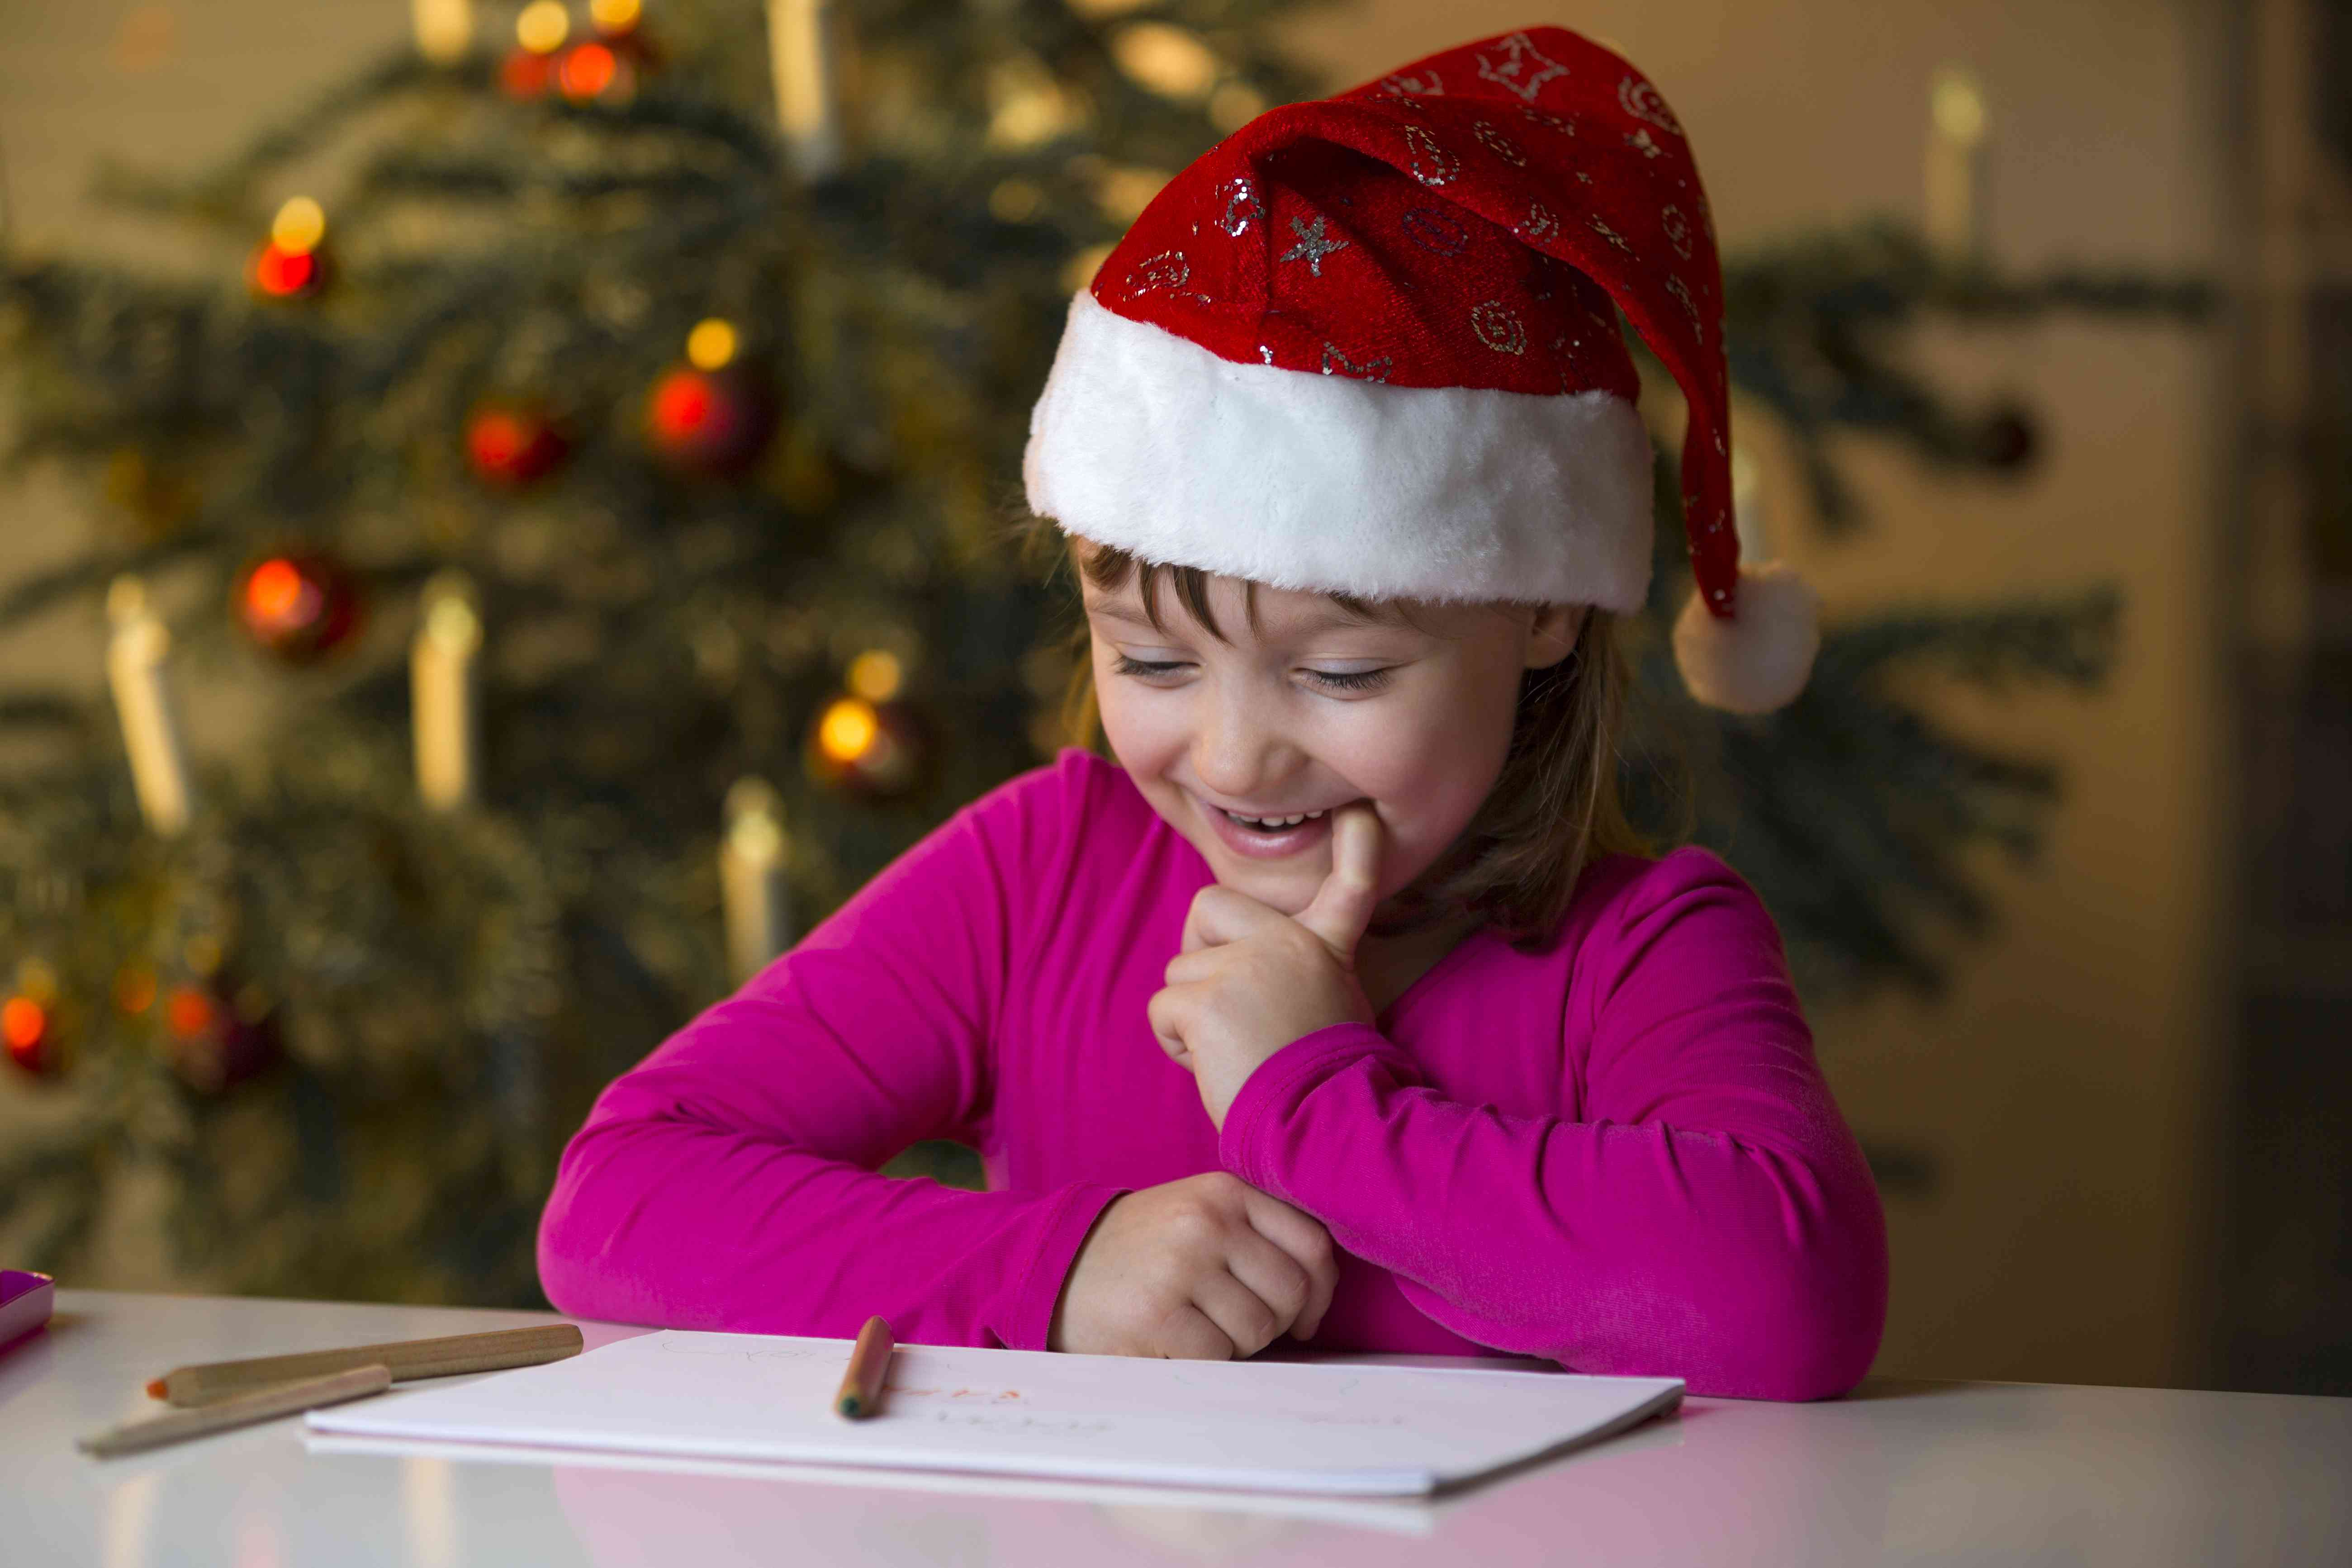 Little girl with Christmas cap looking at her Christmas list